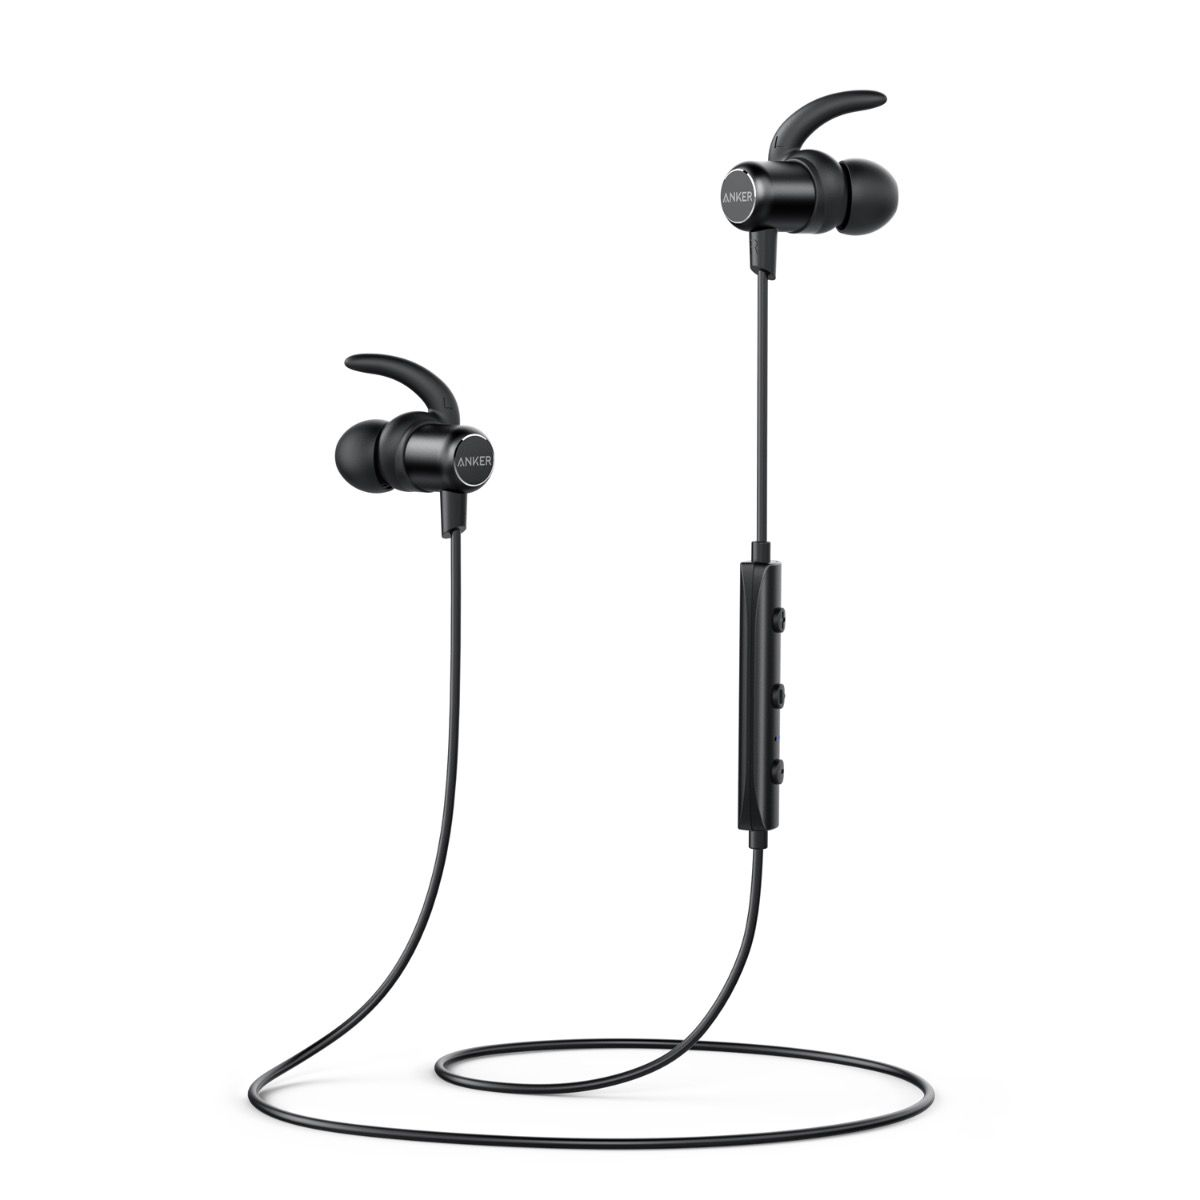 Image of Anker SoundBuds Slim Bluetooth høretelefoner in ear, Sort